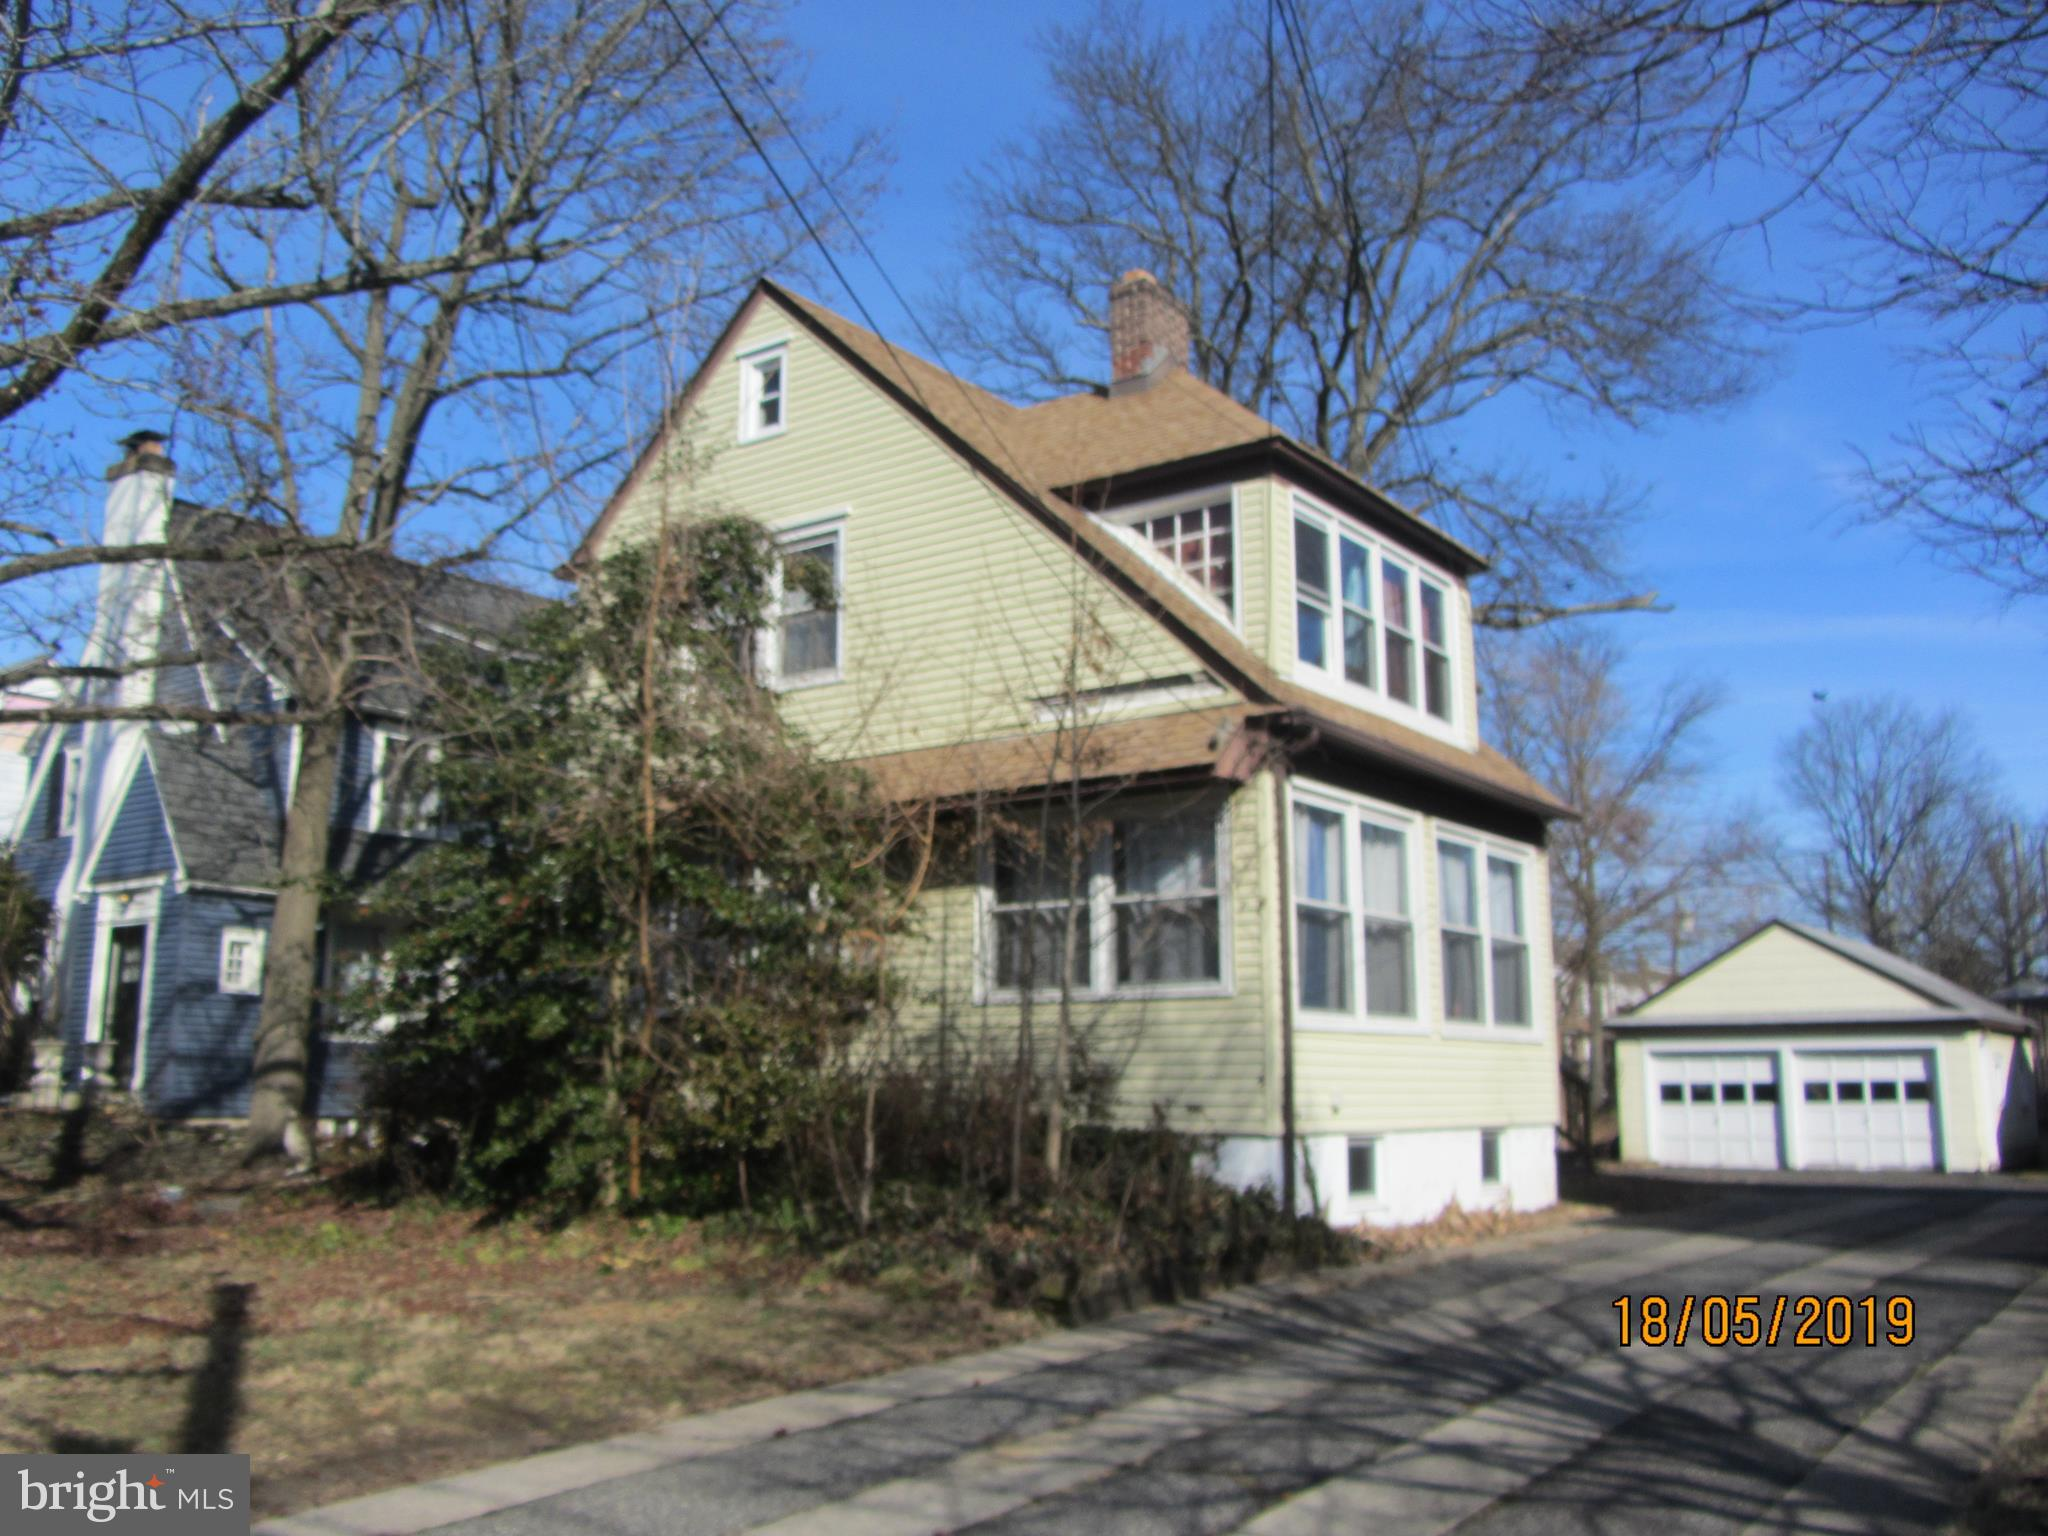 1115 Park Collingswood Nj 08108 Sold Listing Mls Njcd346398 Re Max Of Reading